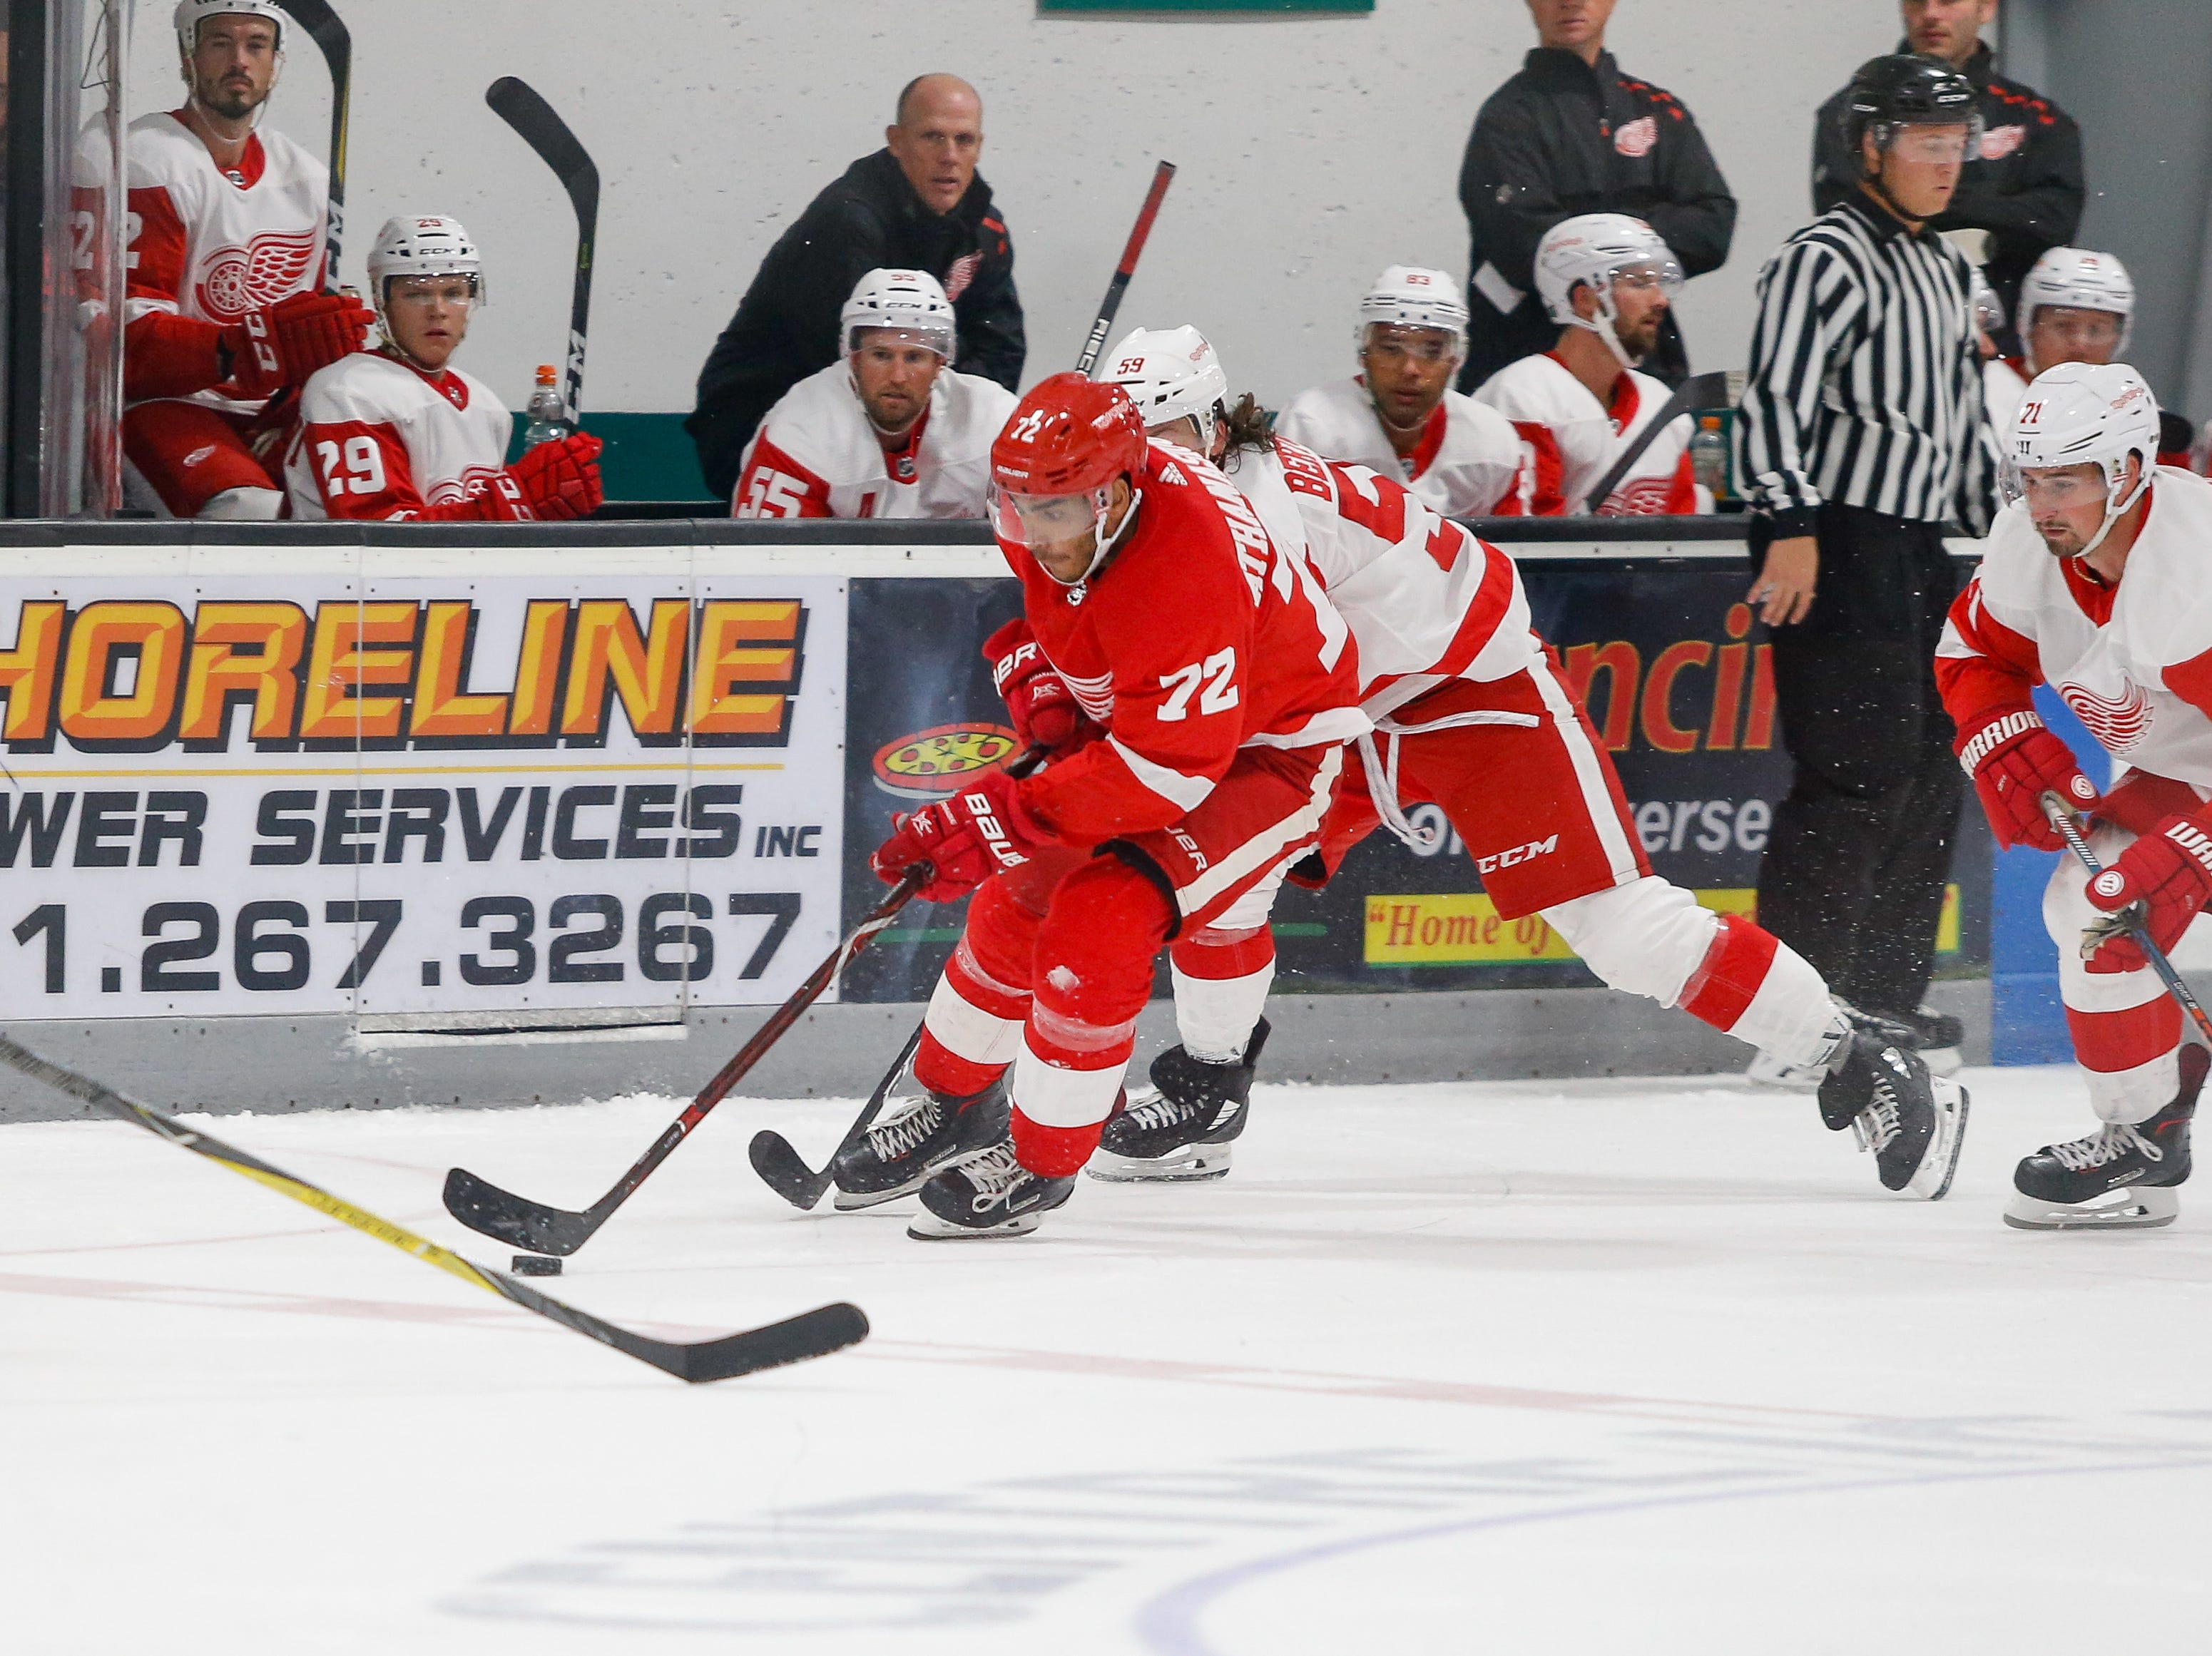 Andreas Athanasiou drives the puck across mid-ice as Team White's Tyler Bertuzzi (59) and Dylan Larkin (71) give chase.